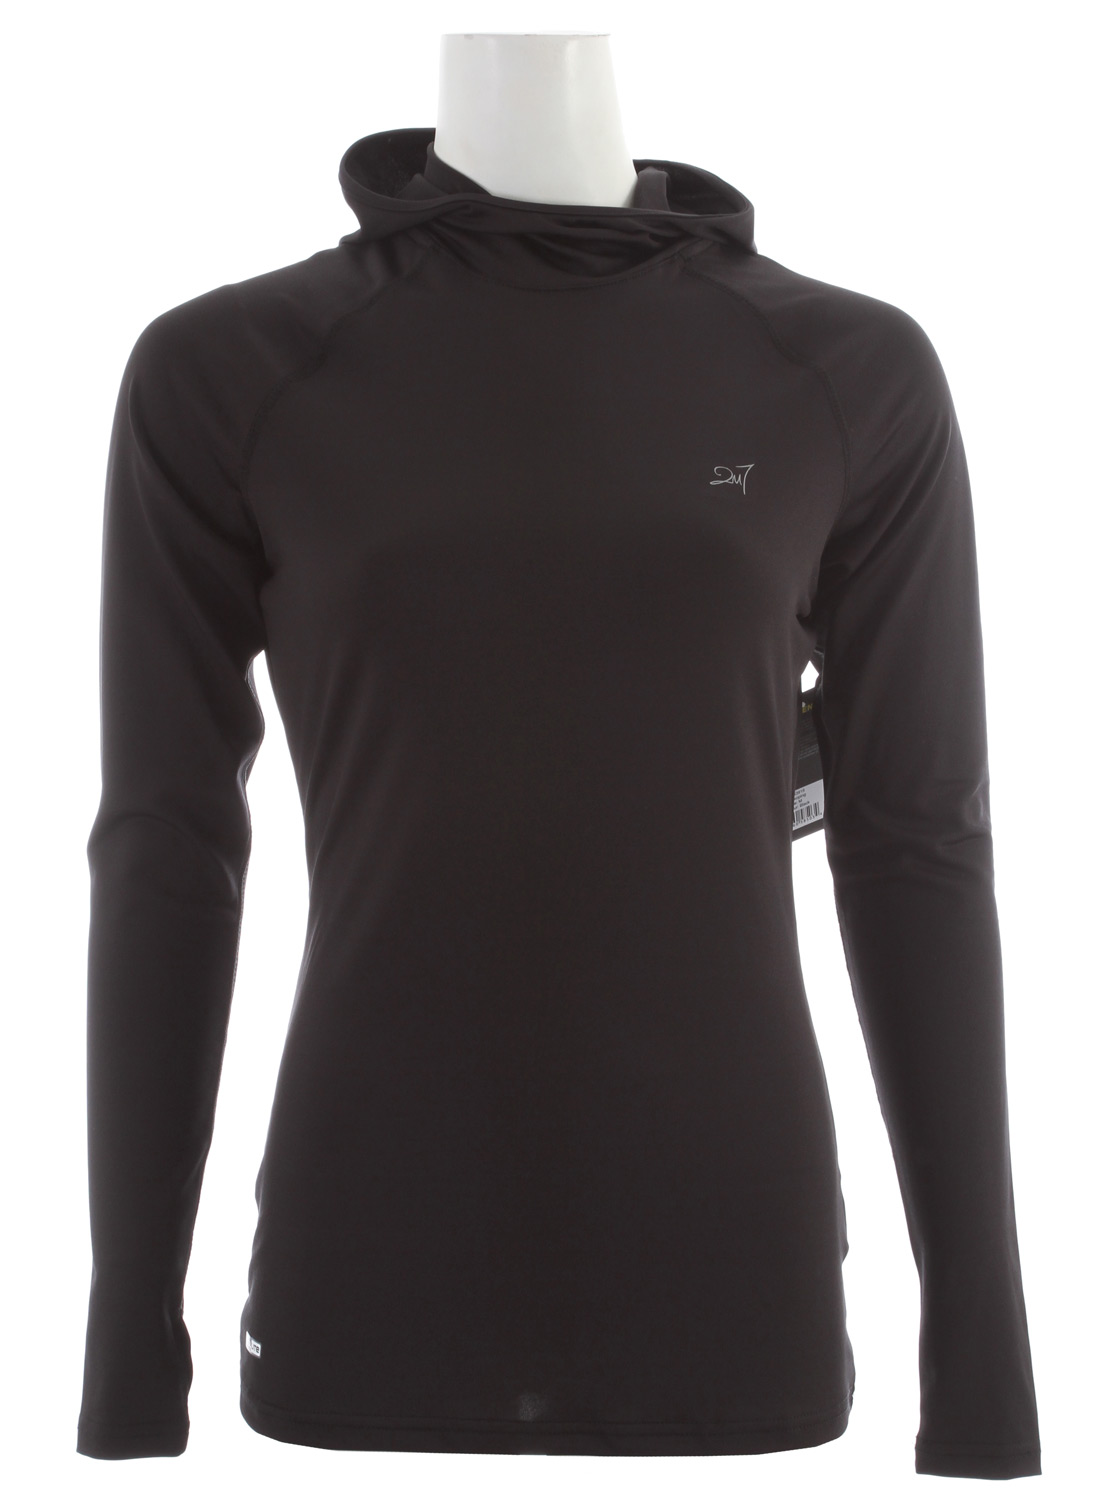 Fitness Short sleeve performance top for womenKey Features of the 2117 Of Sweden Linkoping Cycling Top: Tight fit Quick drying - $31.95